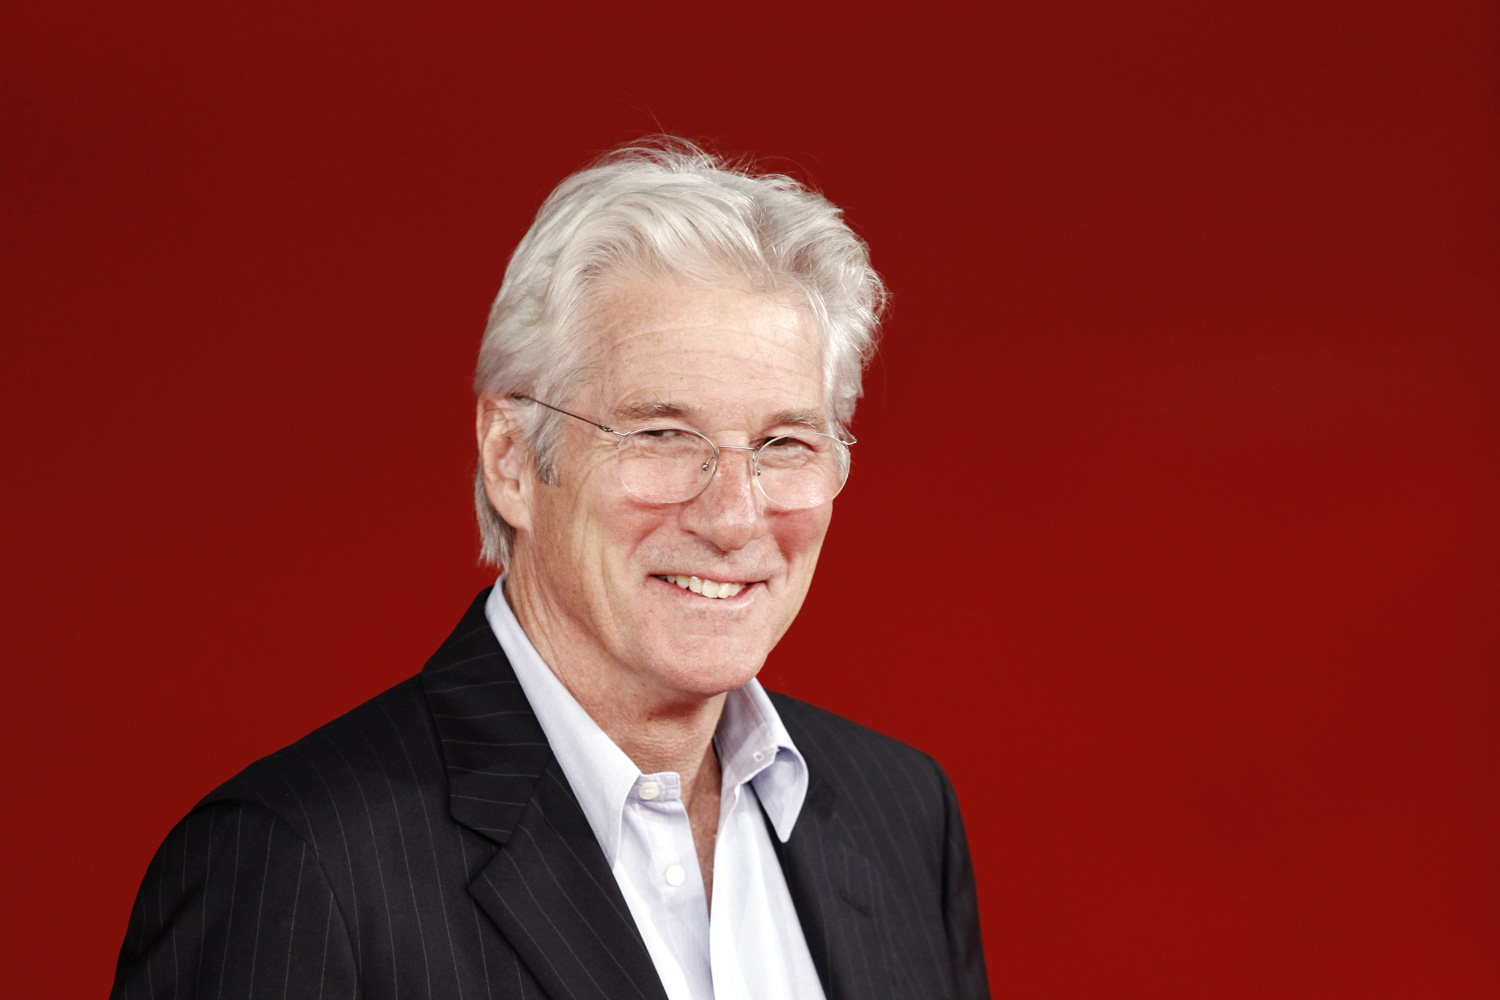 Richard Gere Wallpapers High Quality